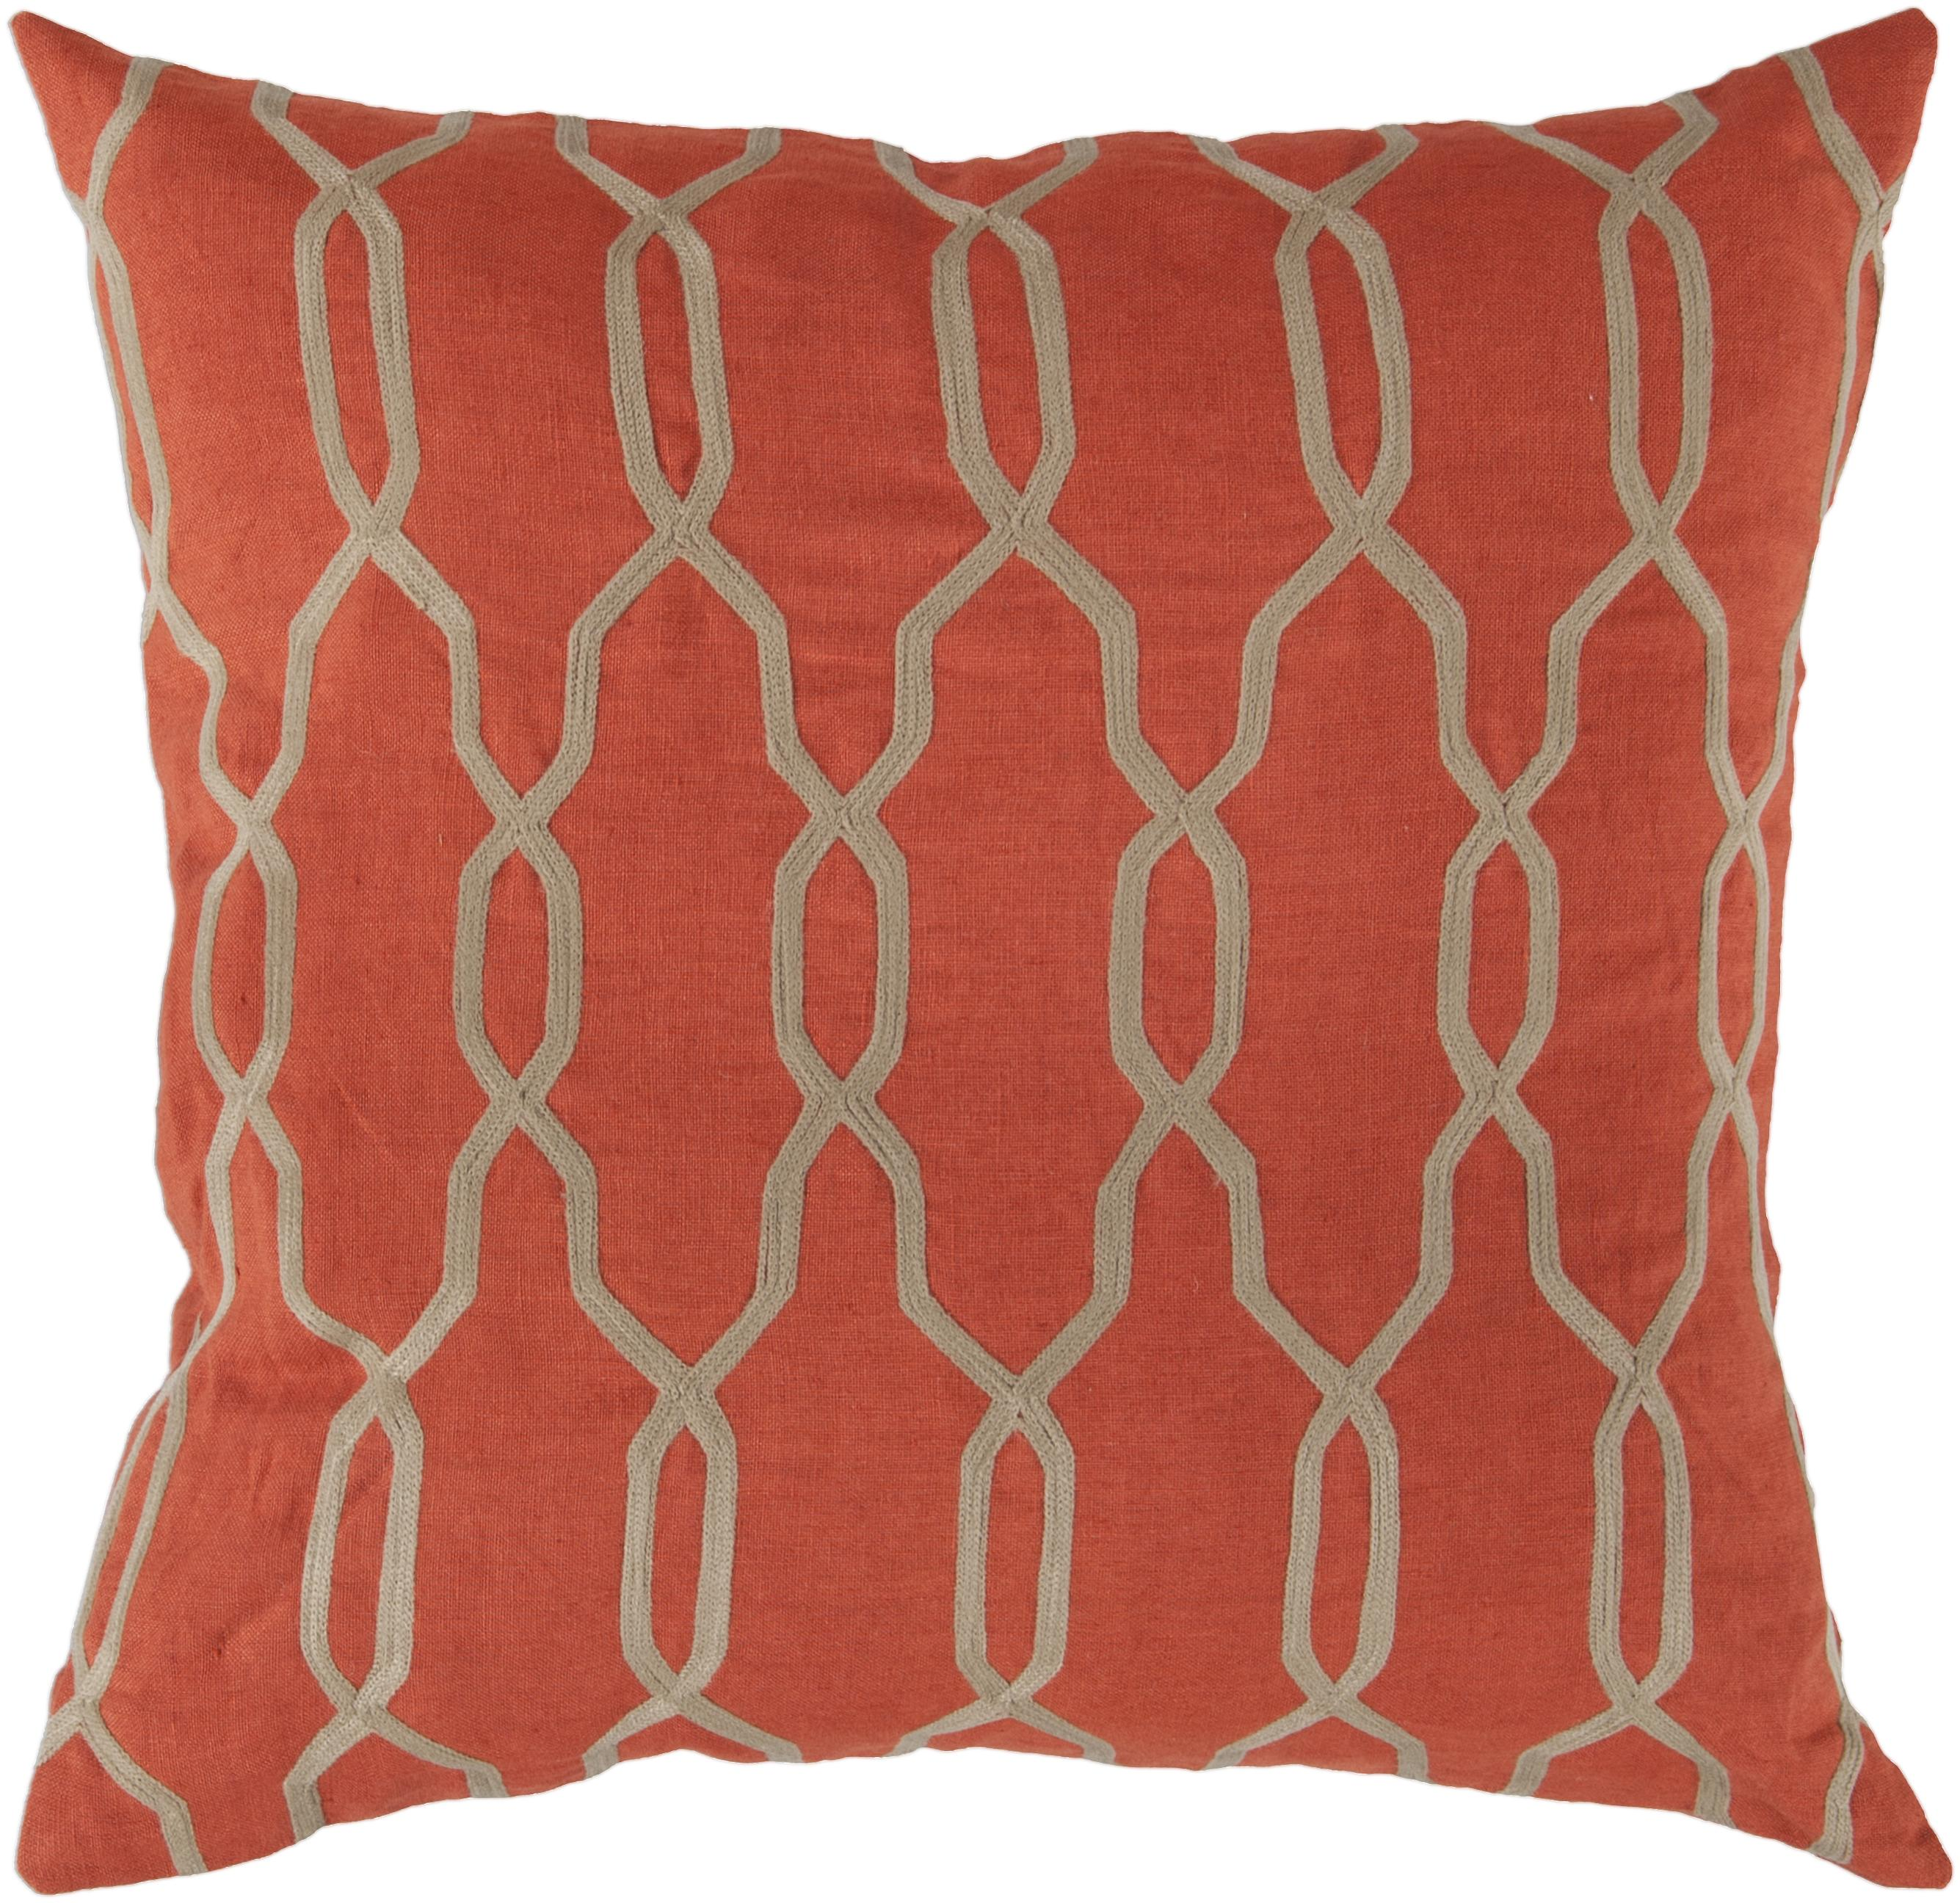 "Surya Pillows 18"" x 18"" Pillow - Item Number: COM005-1818P"